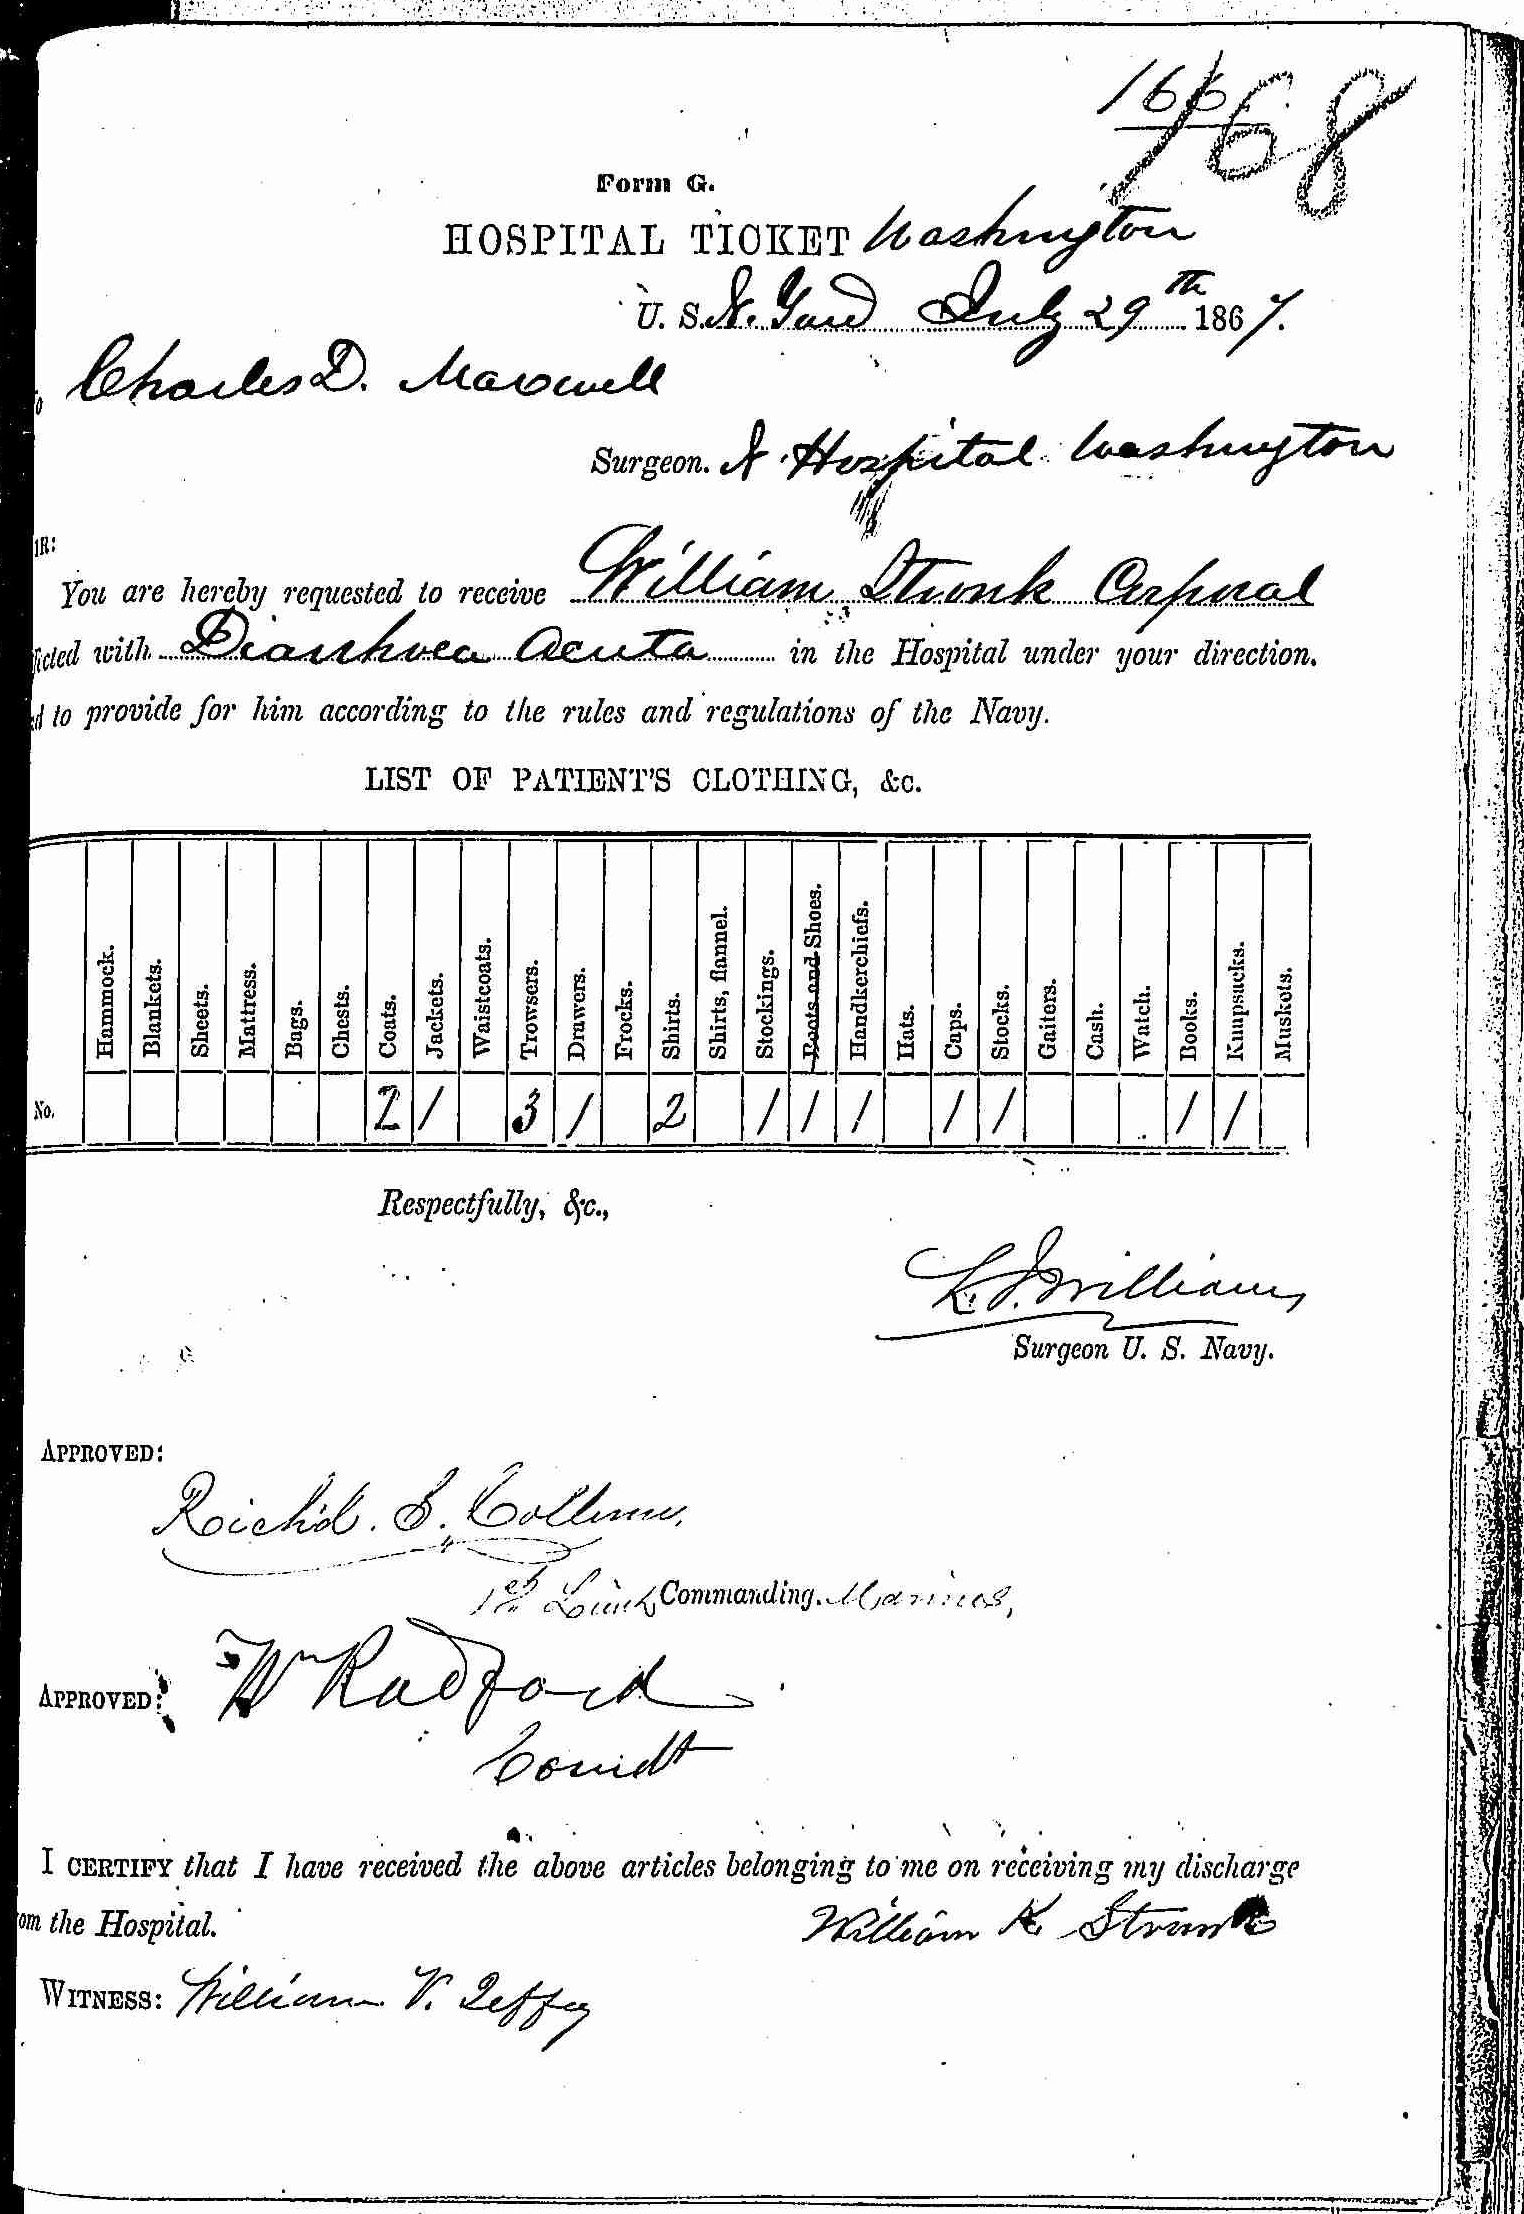 Entry for William Stonk (page 1 of 2) in the log Hospital Tickets and Case Papers - Naval Hospital - Washington, D.C. - 1866-68